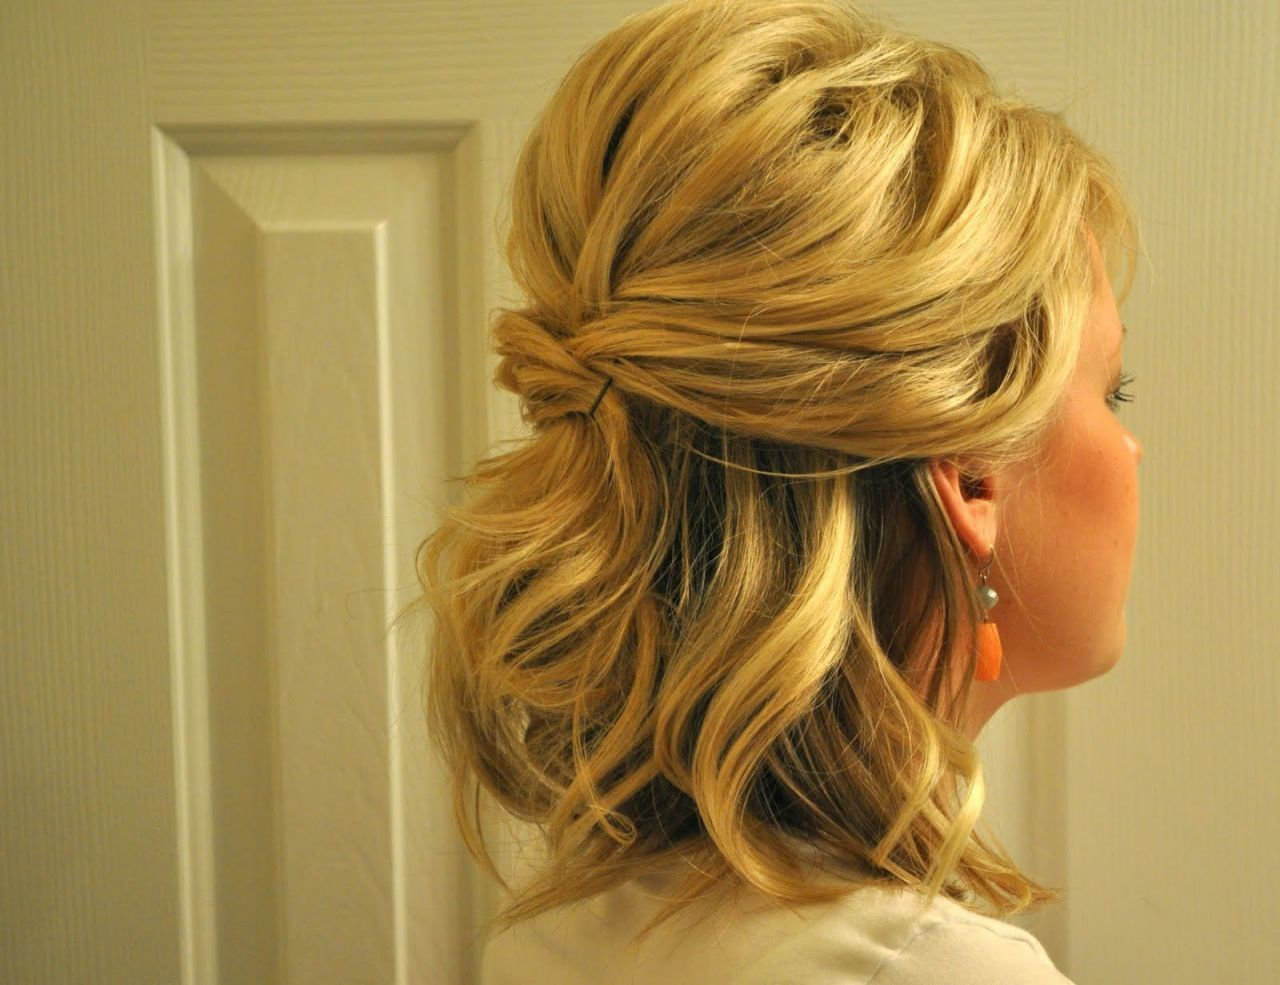 Hairstyles For Curly Hair Half Up Half Down Prom Hairstyles For